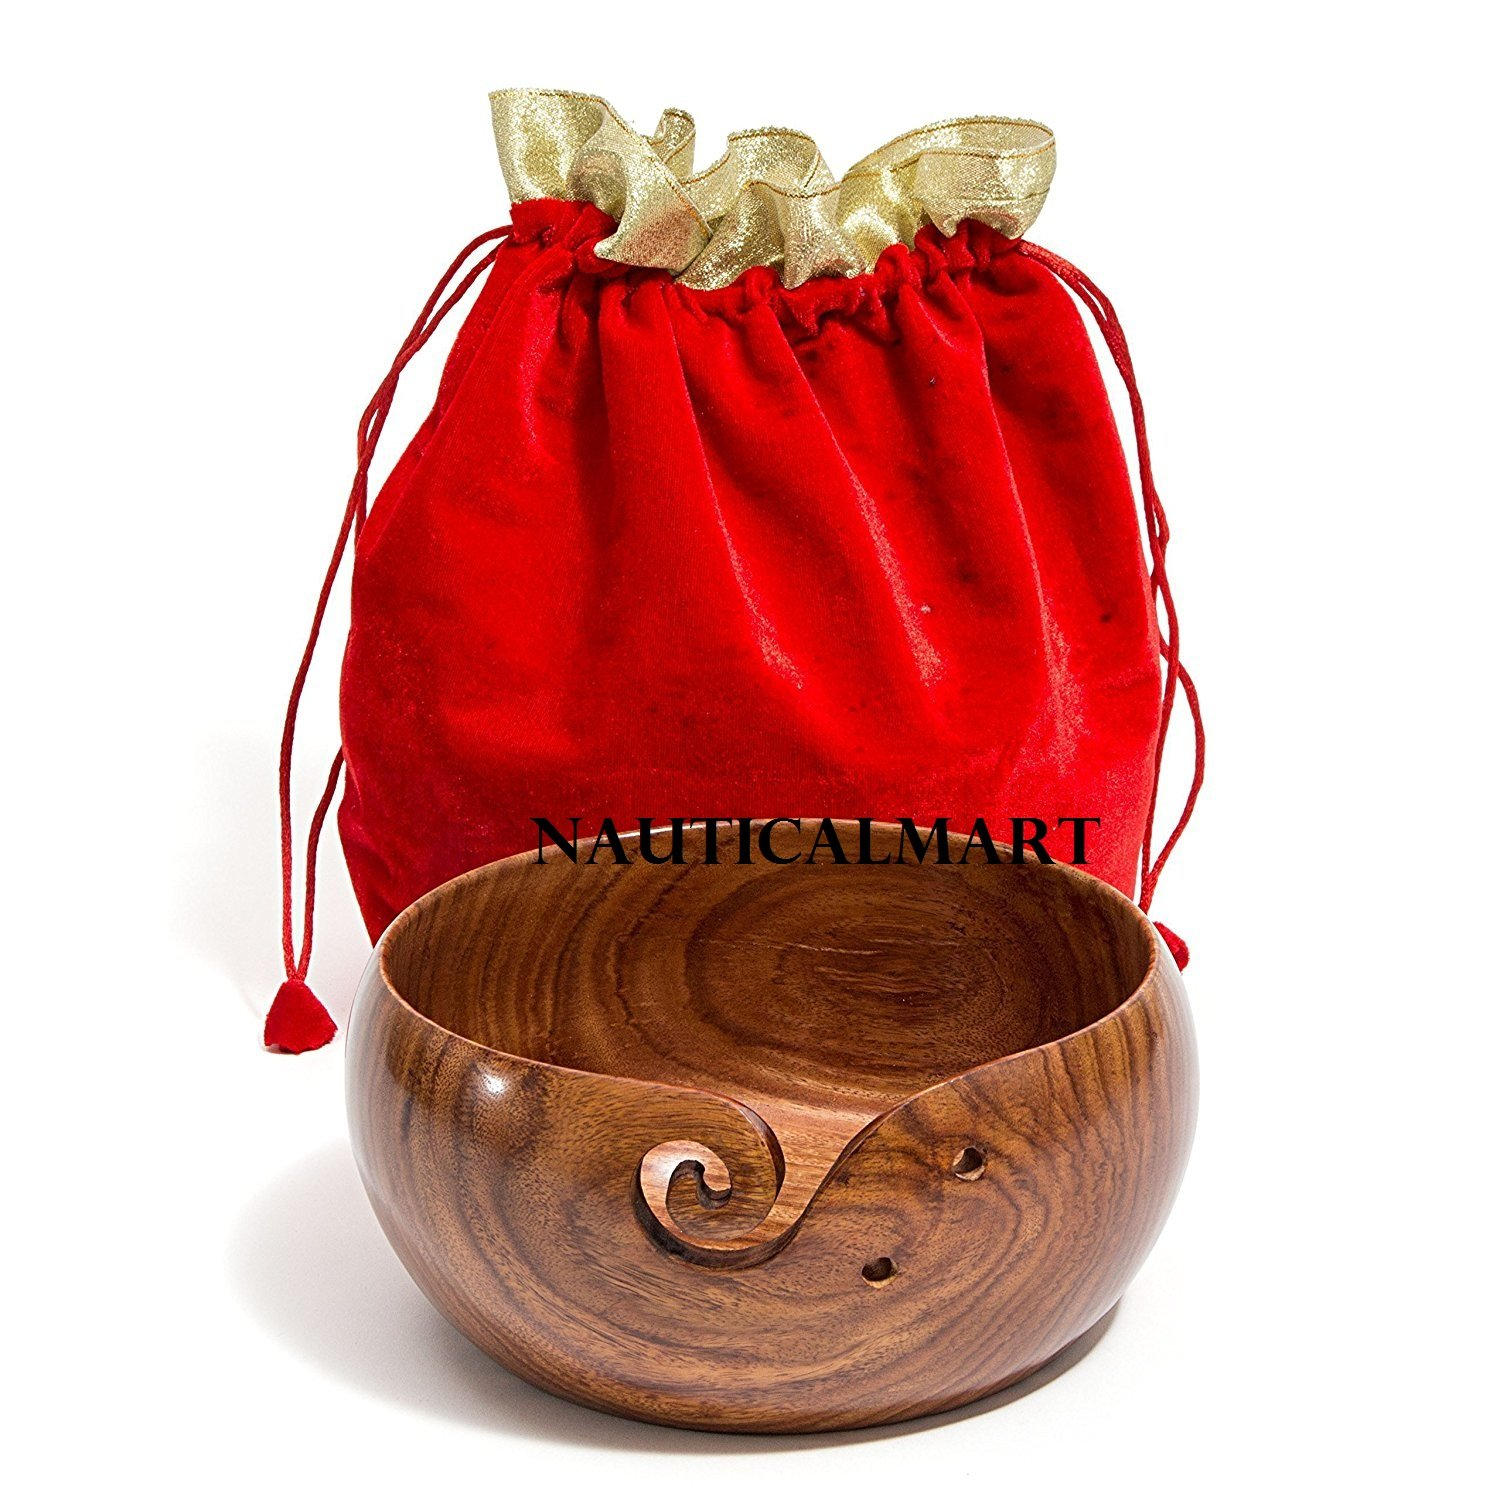 NauticalMart Yarn Bowl -8''x4'' Rosewood Wooden with Free Travel Pouch. Extra Large. Perfect for Knitting & Crocheting